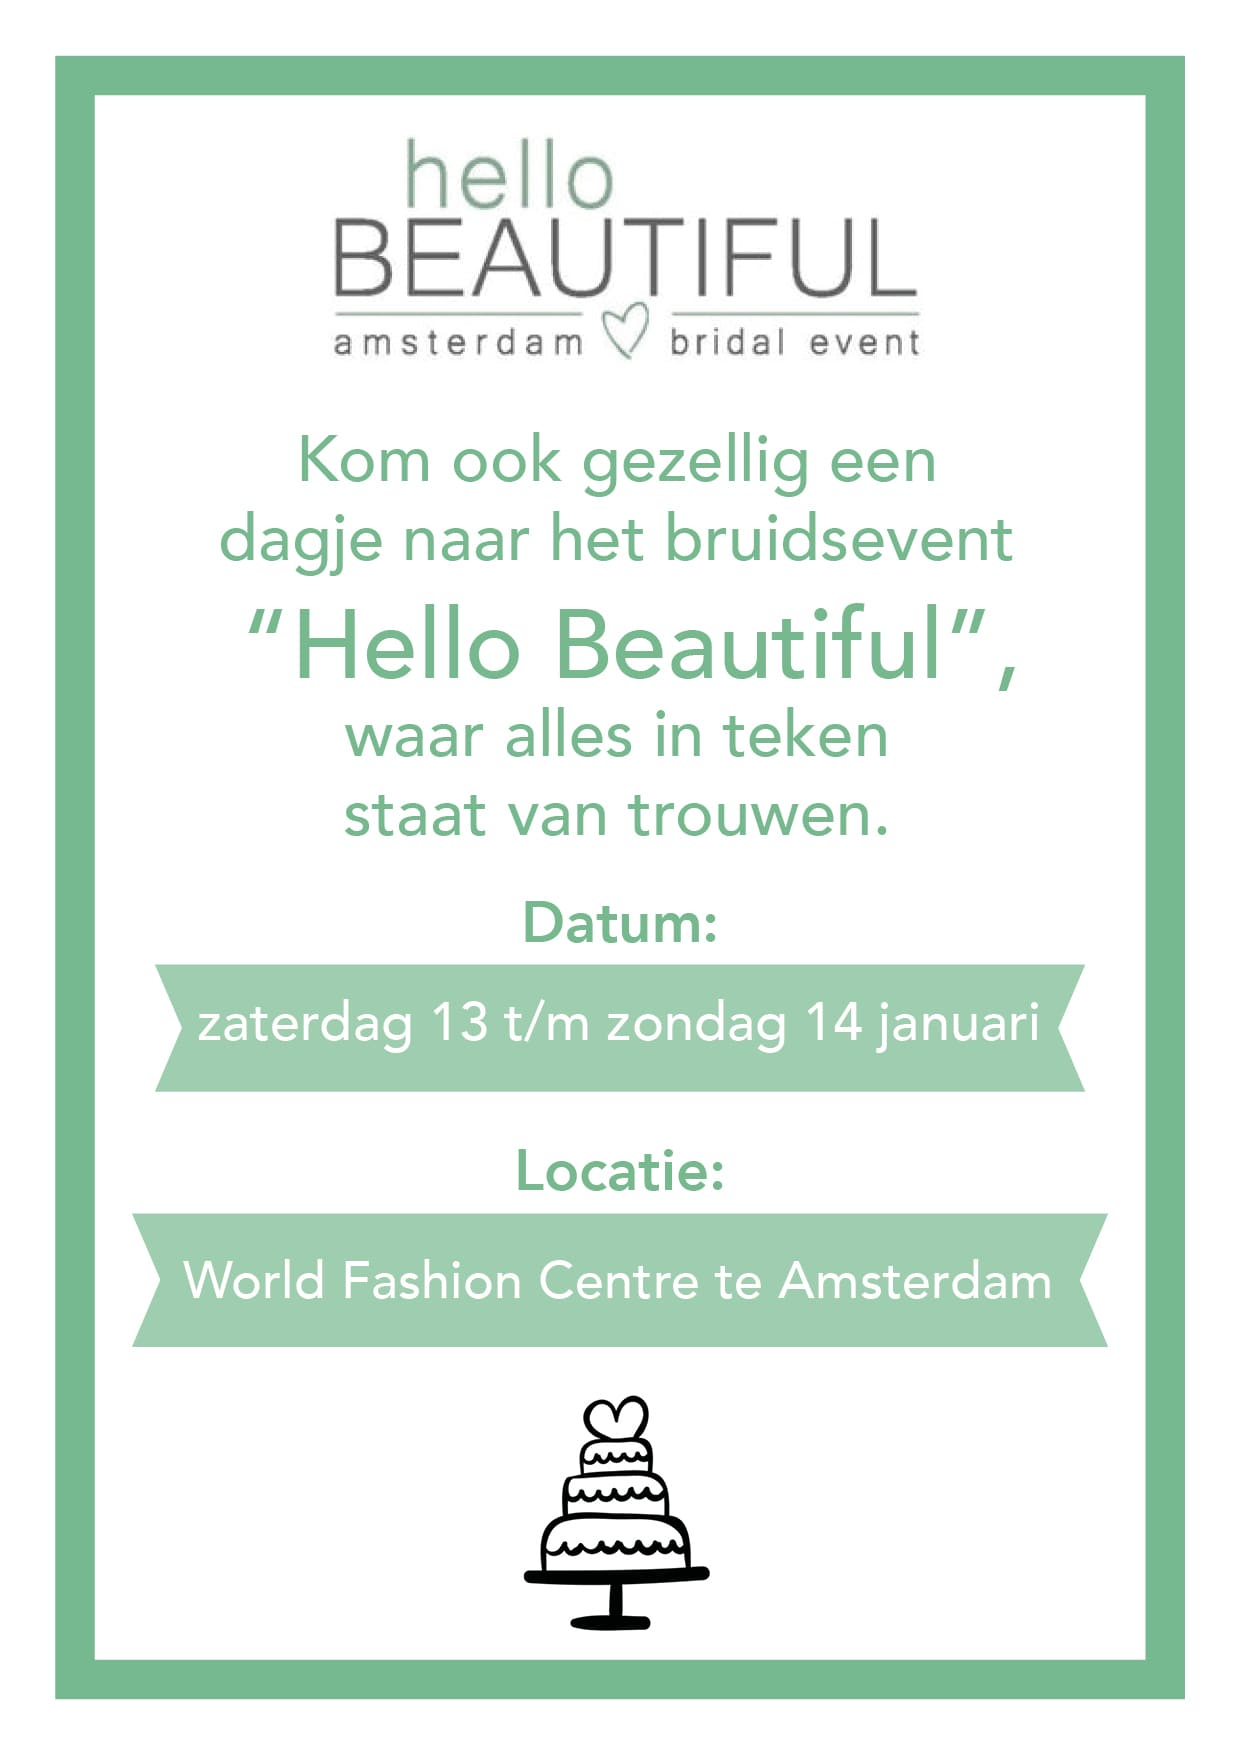 vrijkaartjes hello beautiful bridal event amsterdam fashion centre jilster